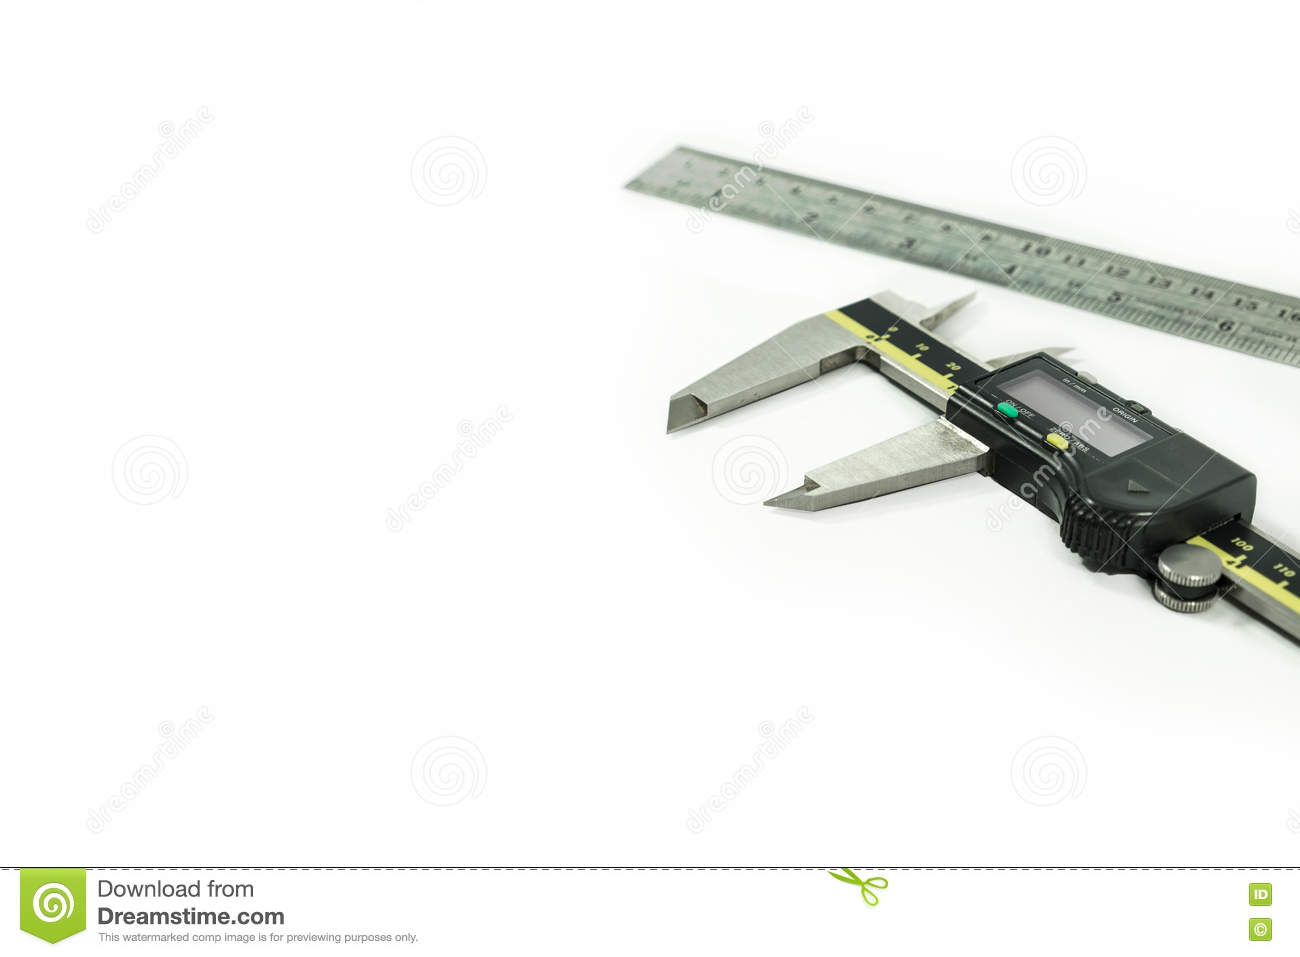 Digital Electronic Vernier Caliper and ruler